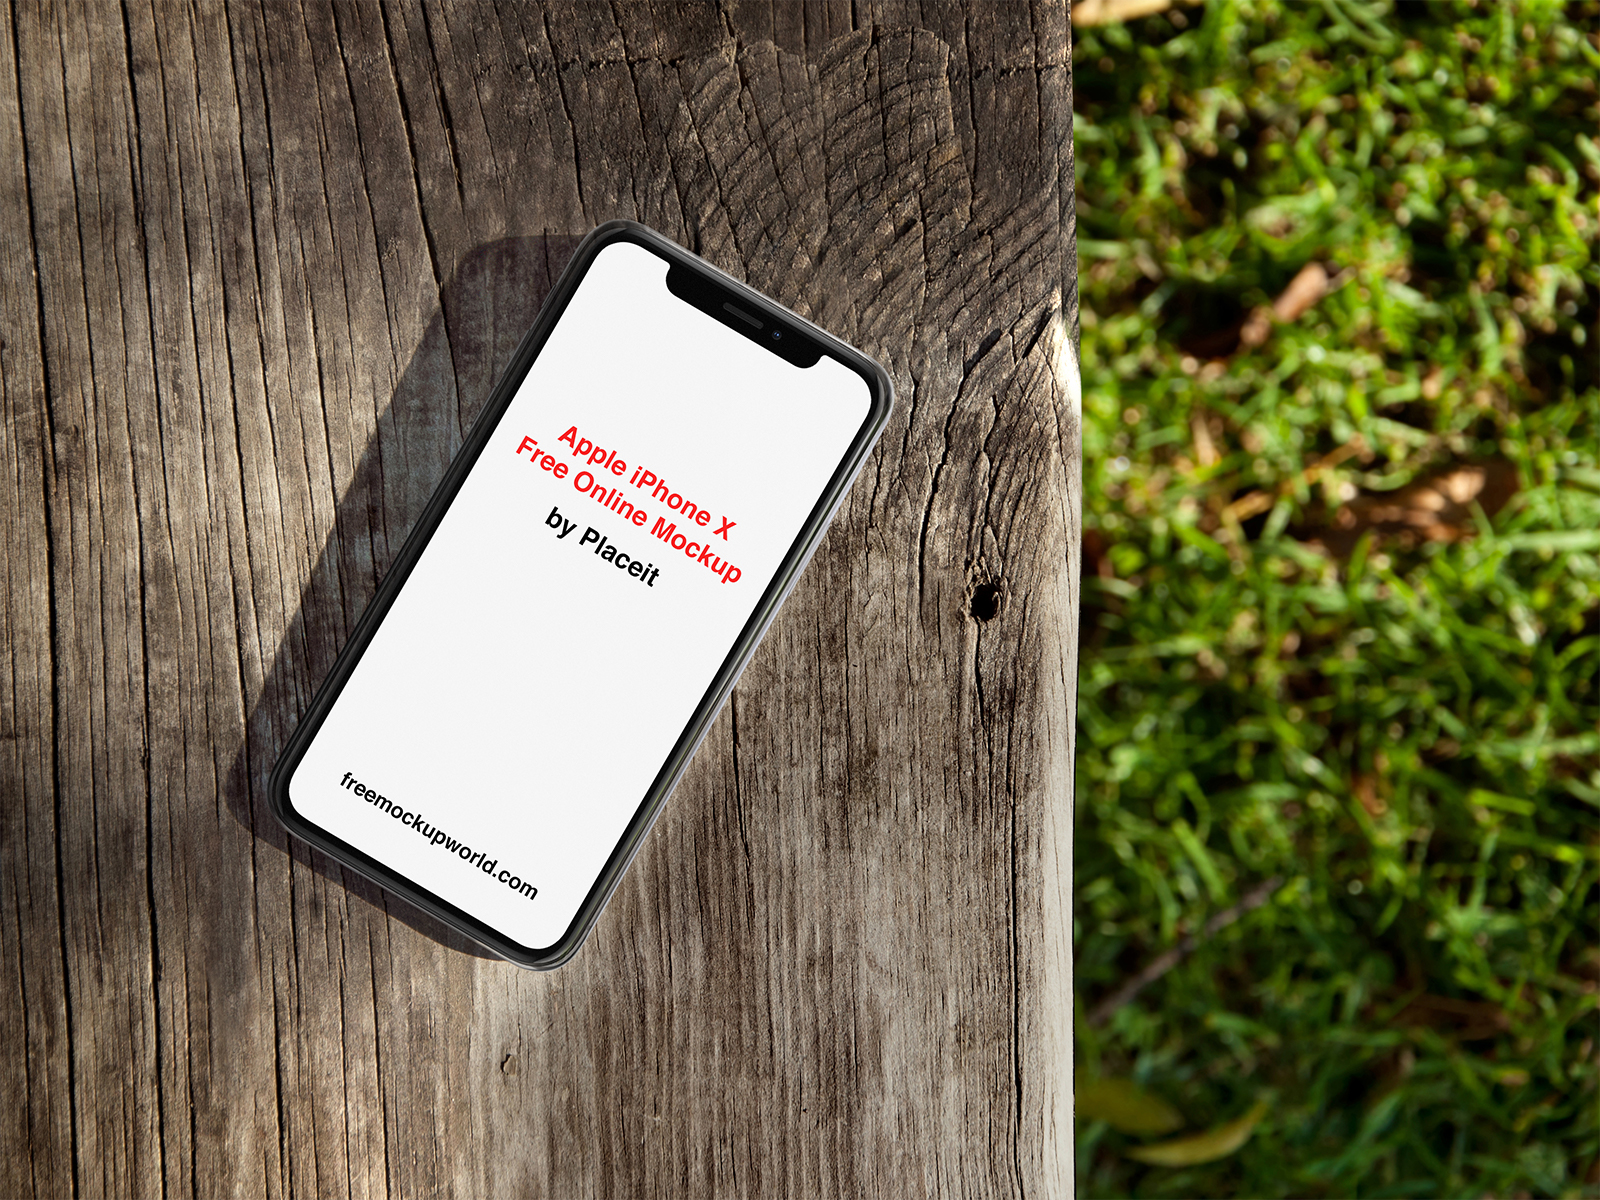 iPhone X Mockup Lying on a Wooden Bench